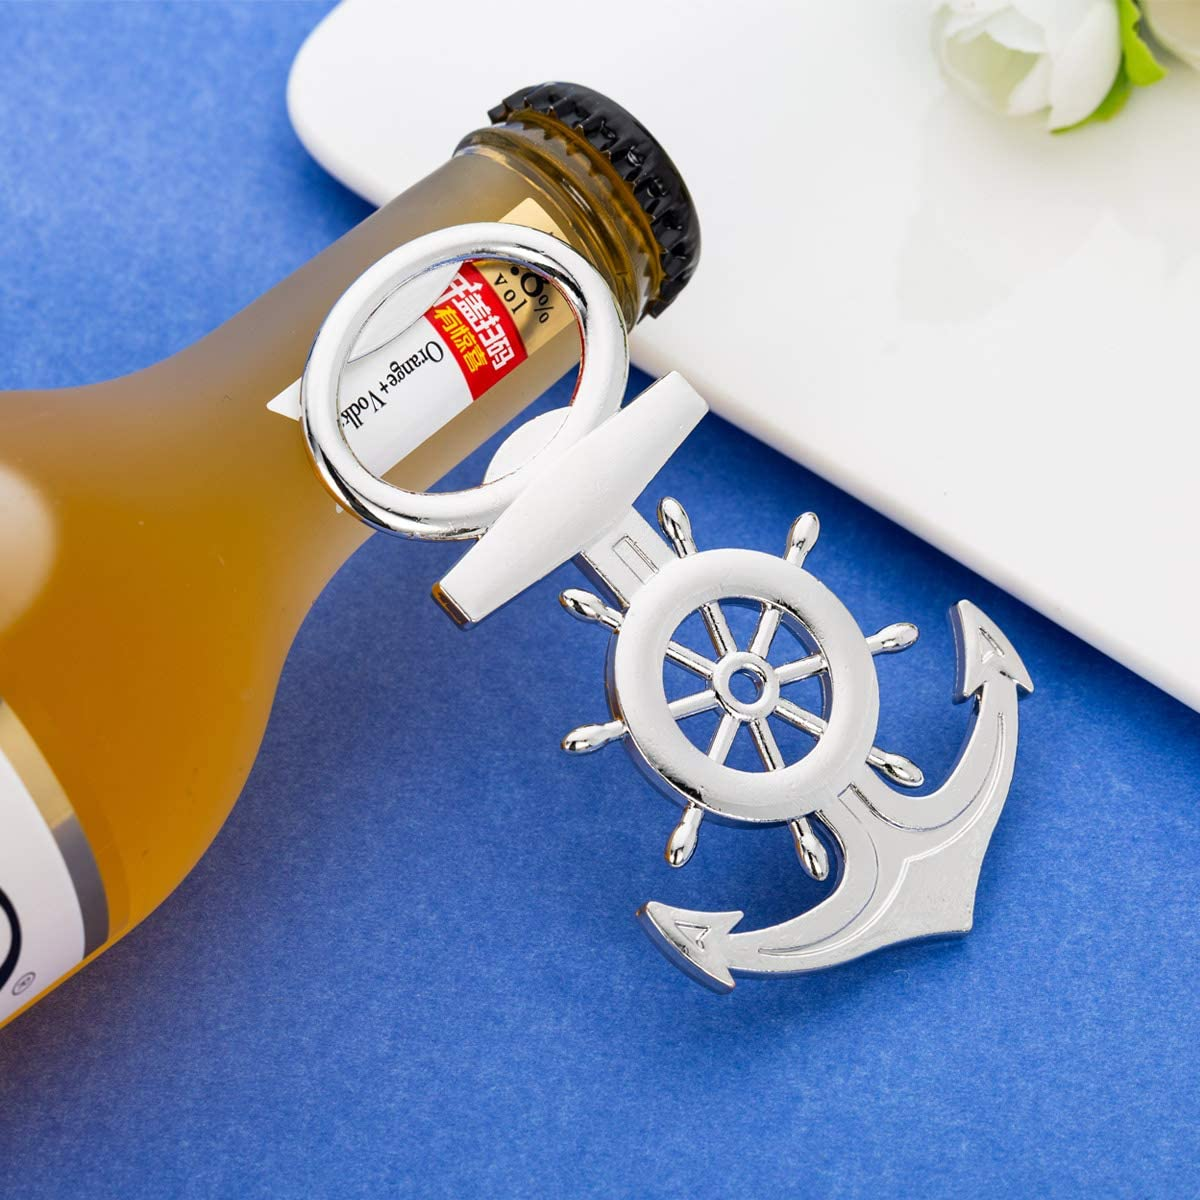 16Pcs Nautical Themed Anchor & Wheel Beer Bottle Opener Party Favors for Guests Boxed Souvenir Gift Favor for Nautical Beach Wedding Baby Bridal ...